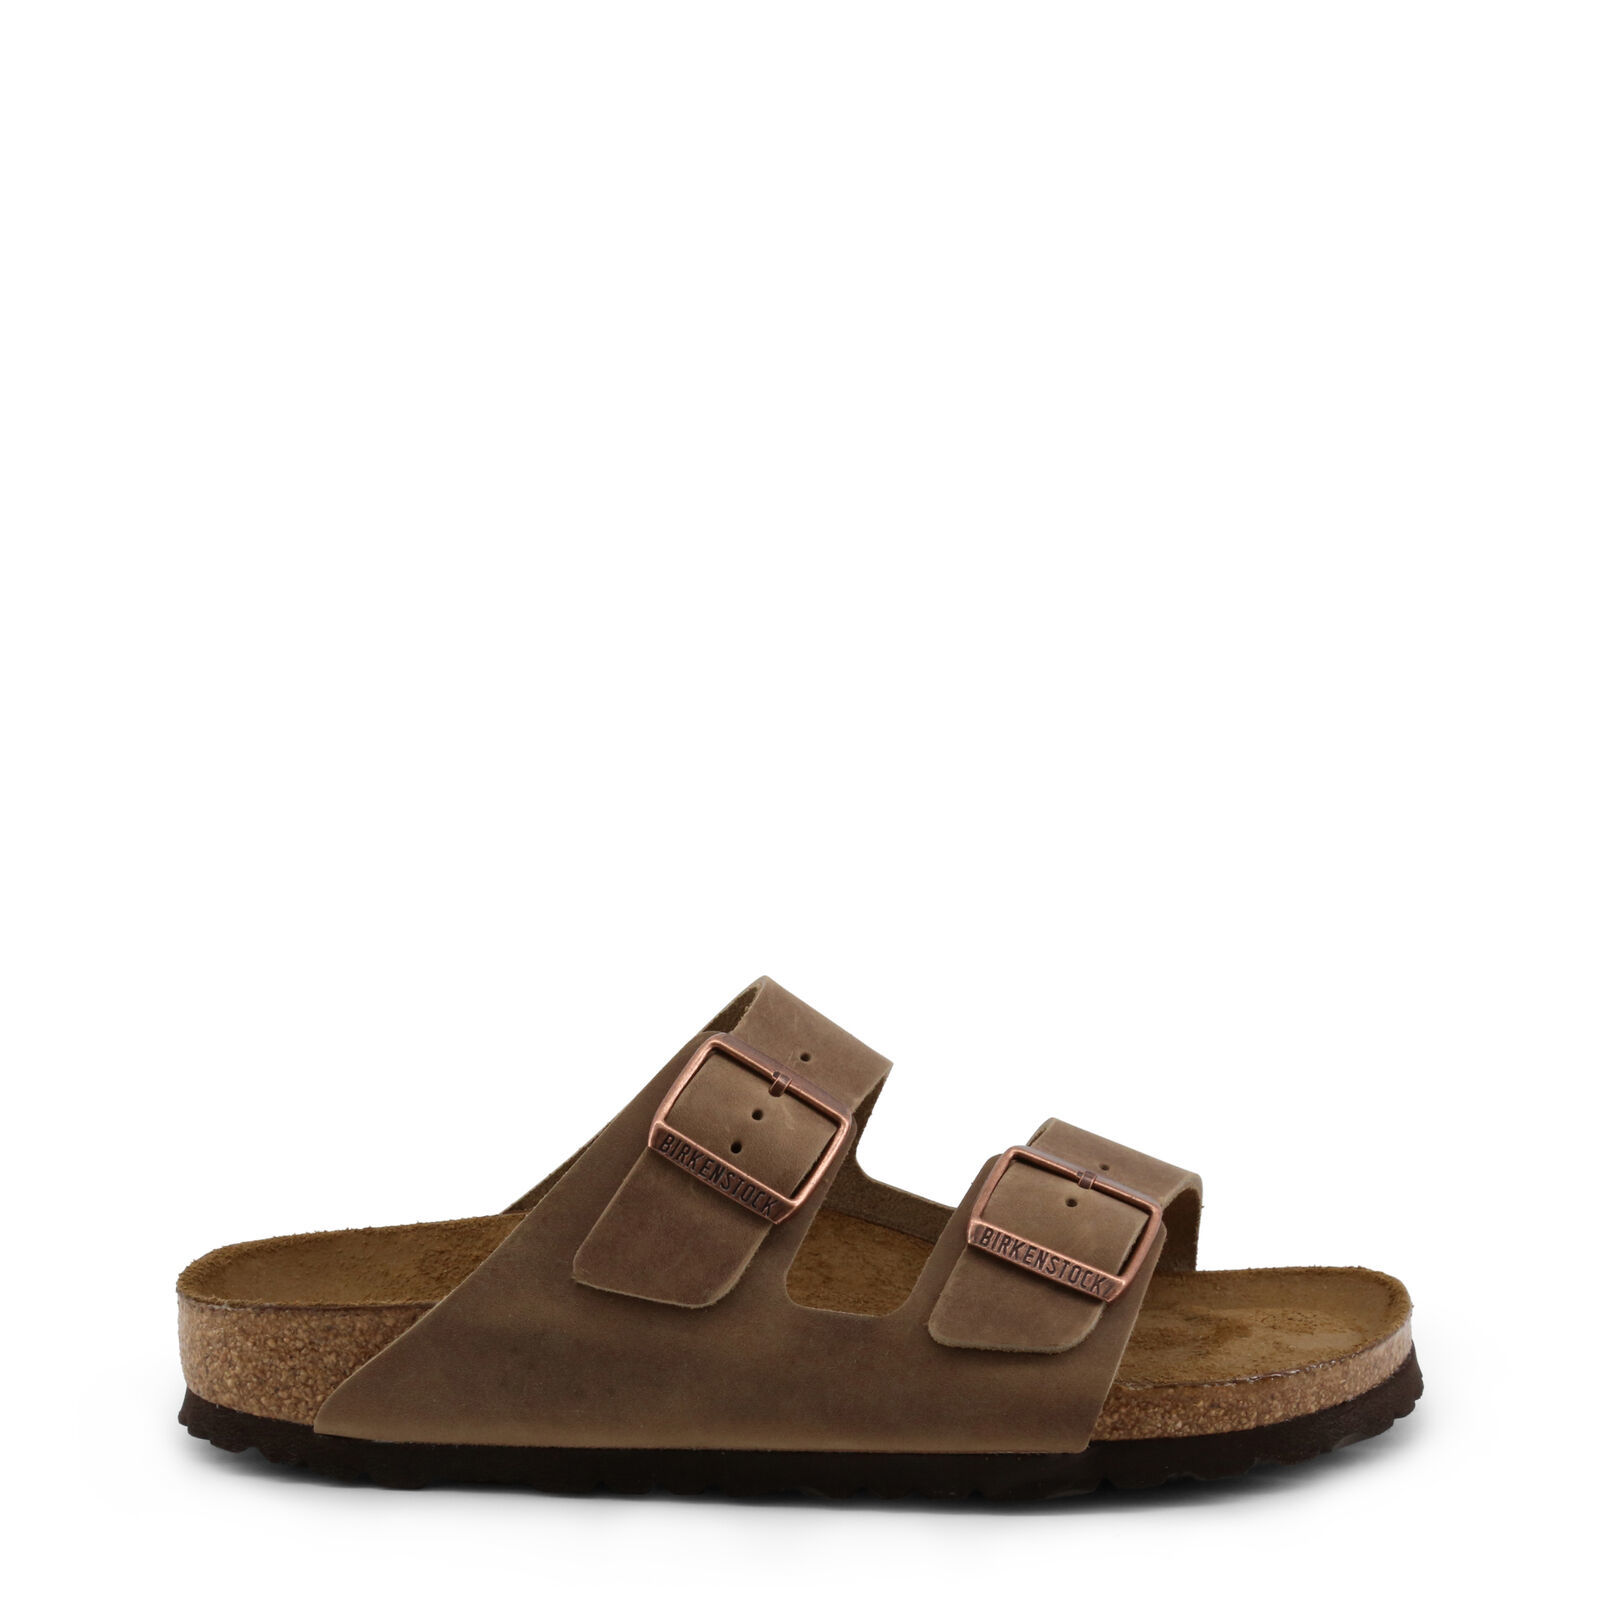 official photos 6c53b 5f538 Birkenstock Shoes: 3 customer reviews and 50 listings